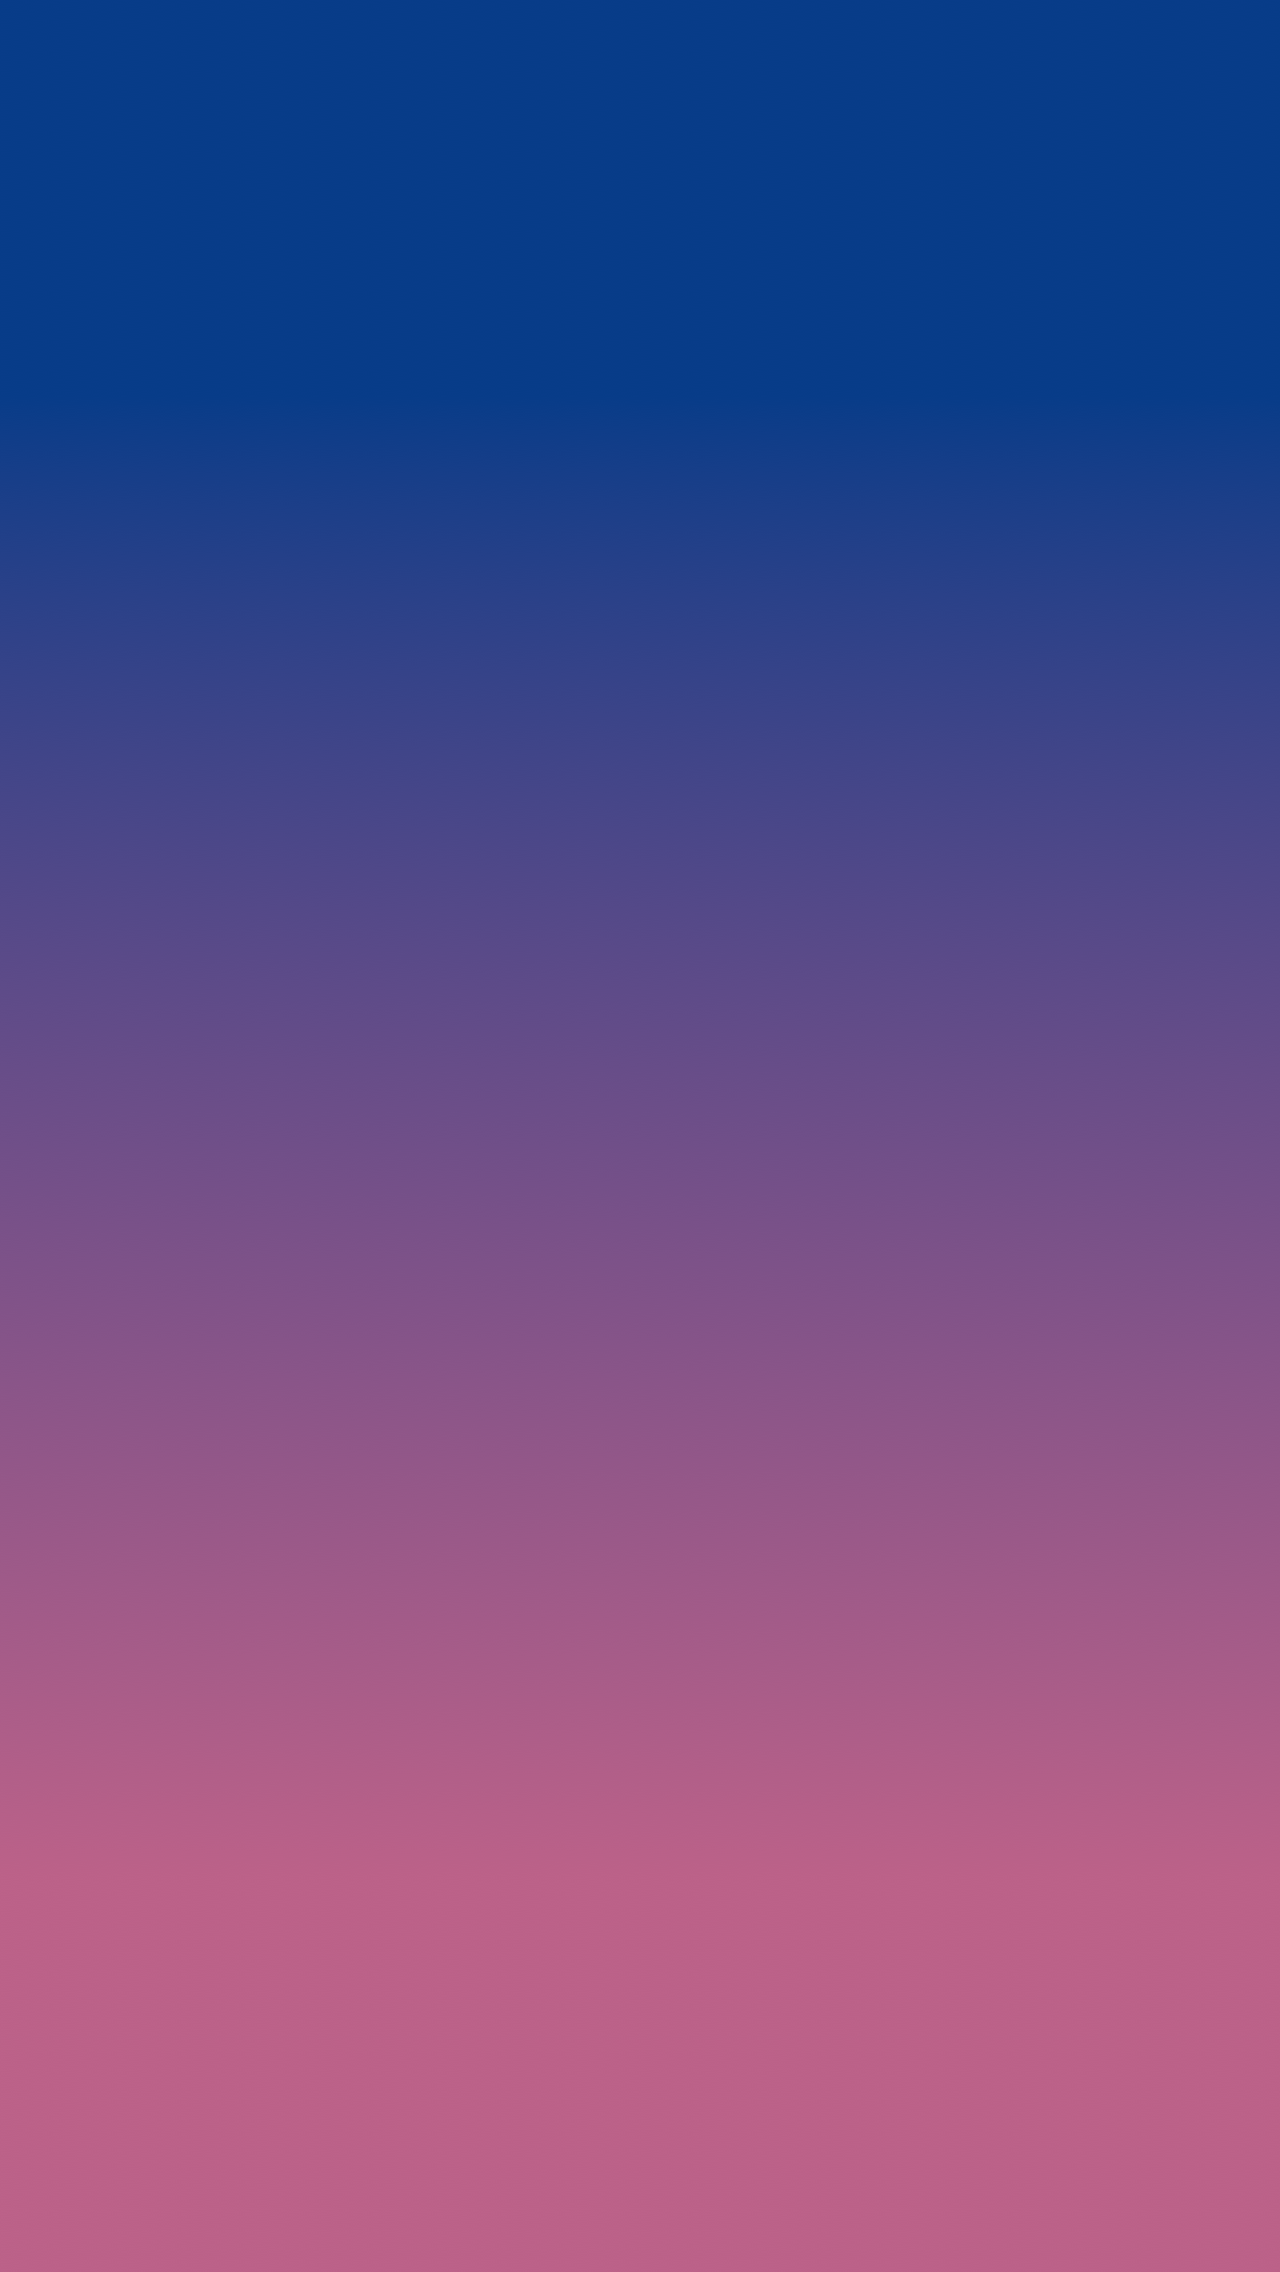 Blue Pink Colorful Wallpaper Free Background Images Blue